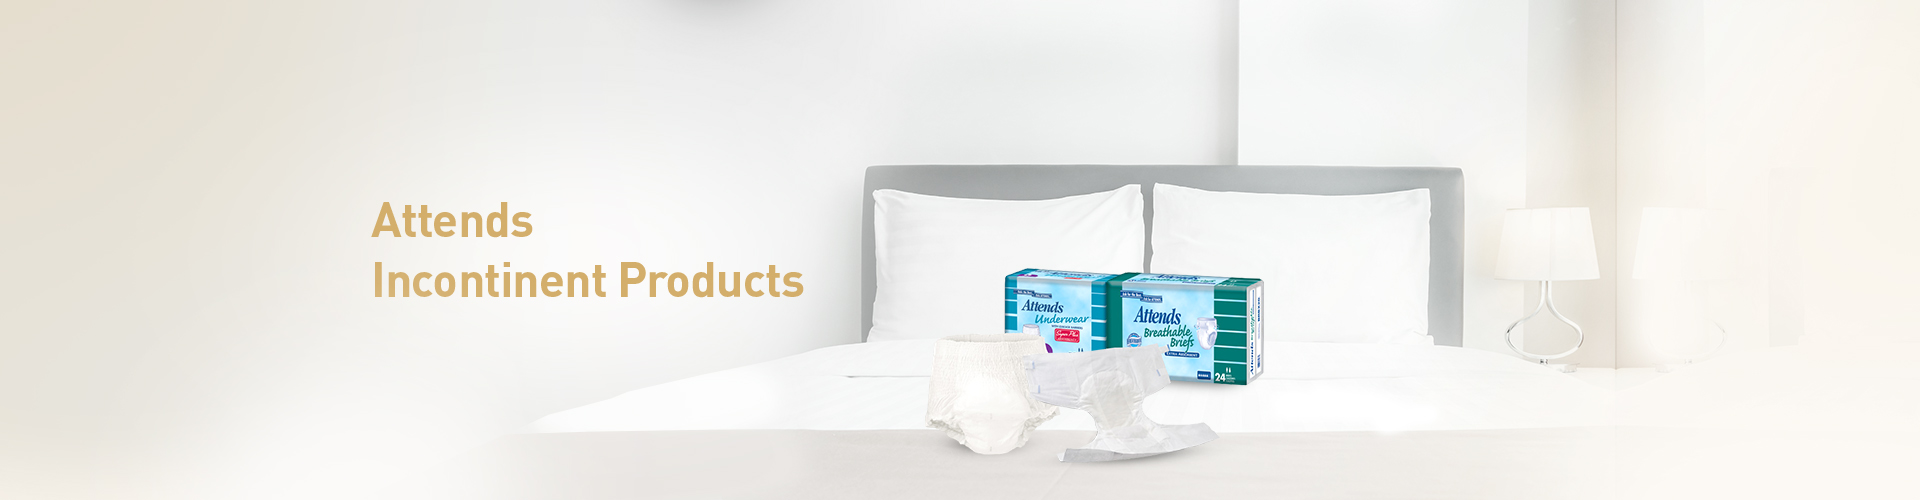 Attends Incontinence Products